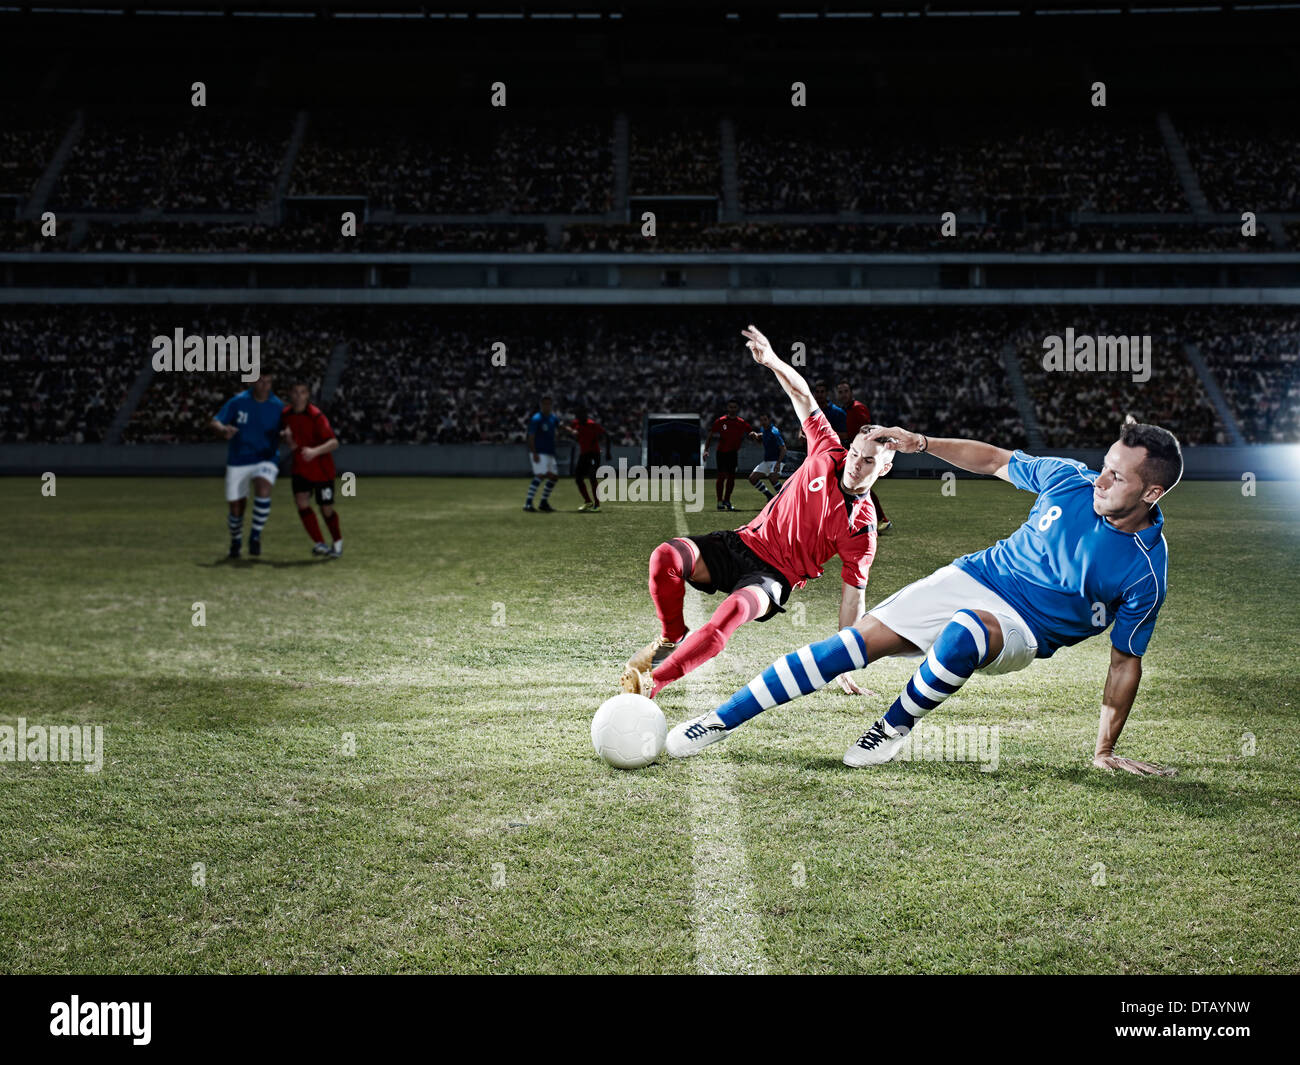 Soccer players kicking for ball on field - Stock Image